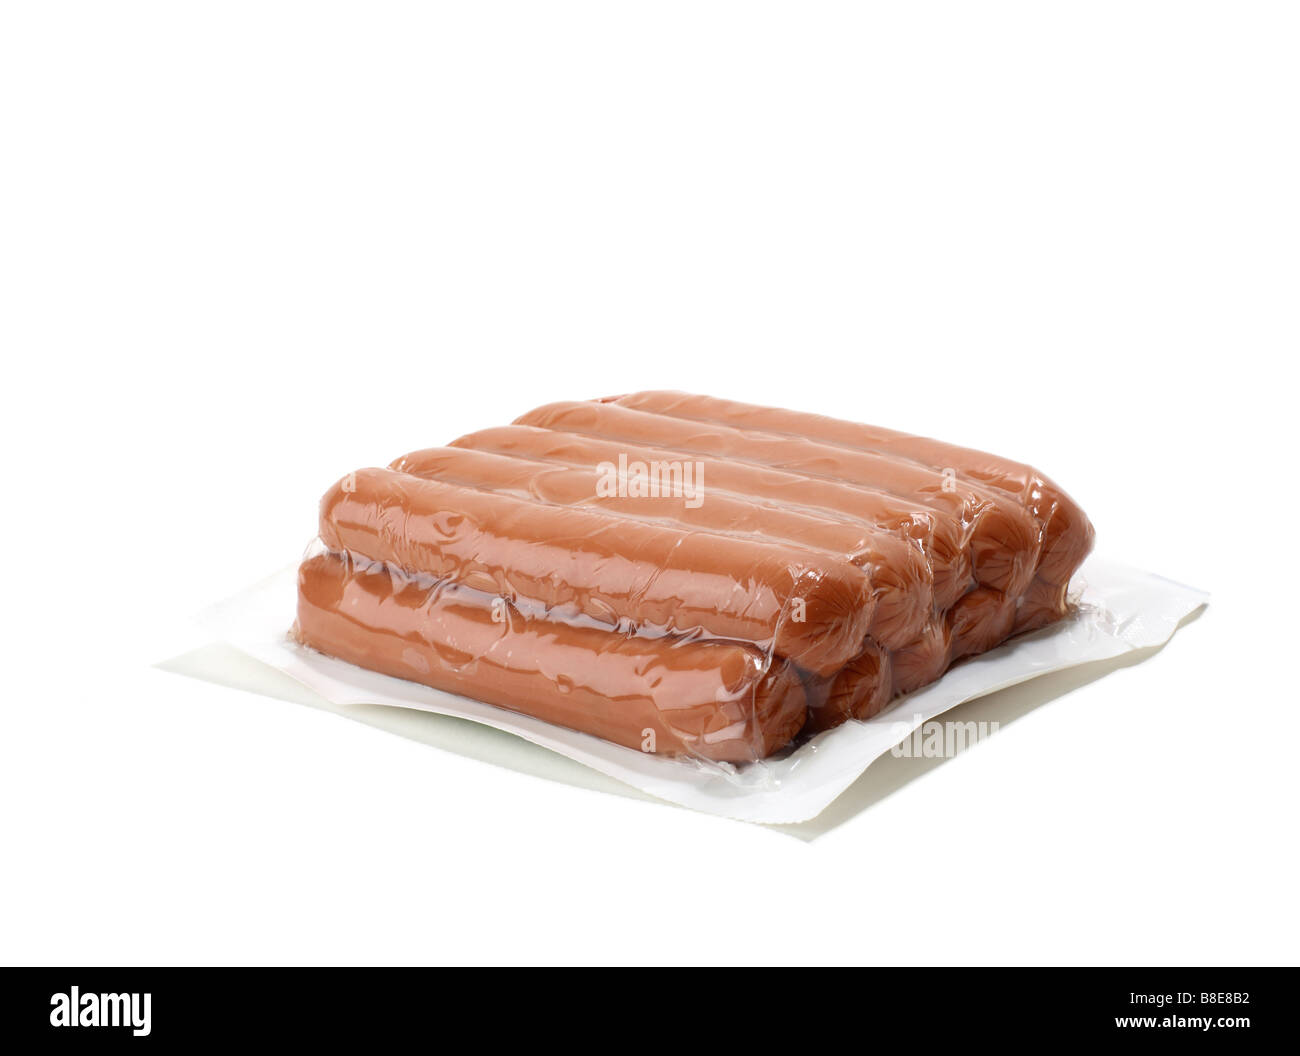 Package Of Hot Dogs - Stock Image